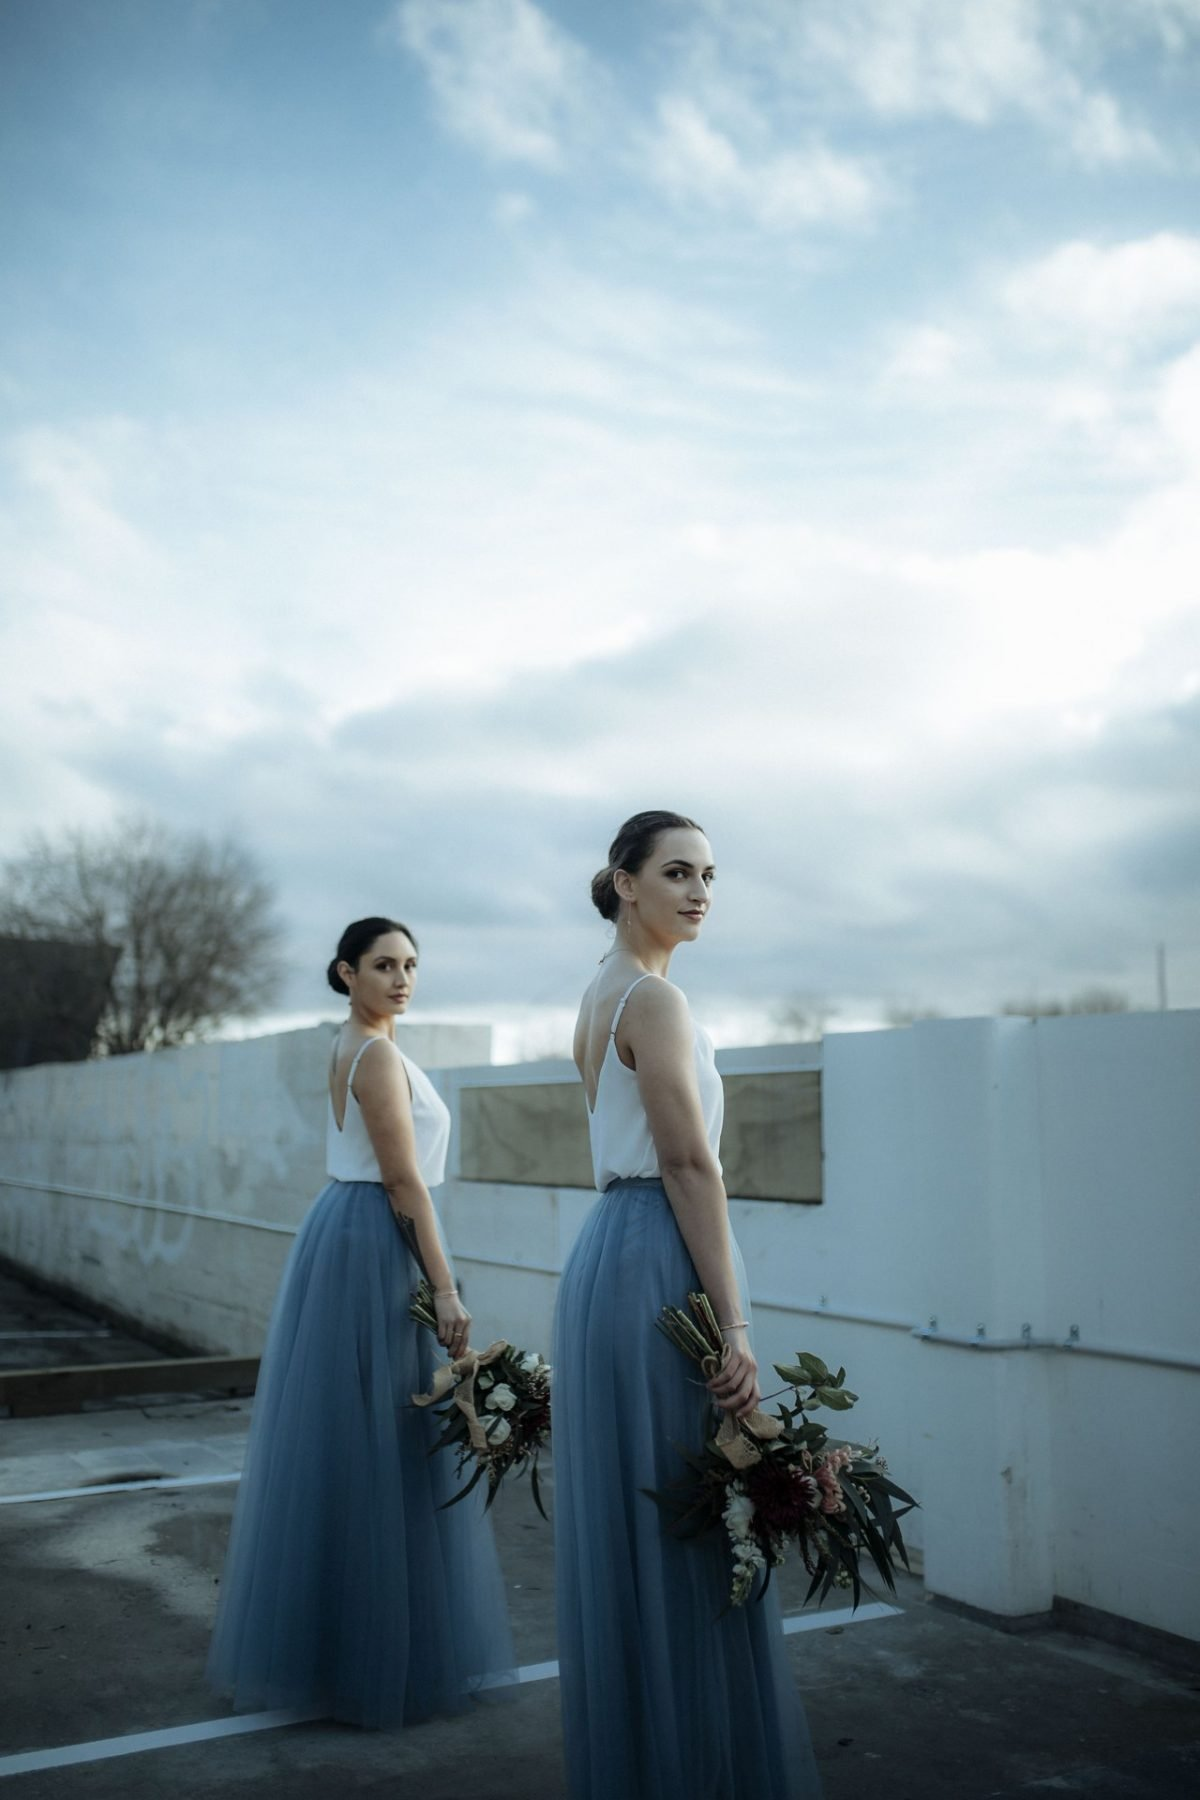 <strong>Featuring:</strong> Petra Chiffon Top and Fleur Tulle Skirt in Slate Blue